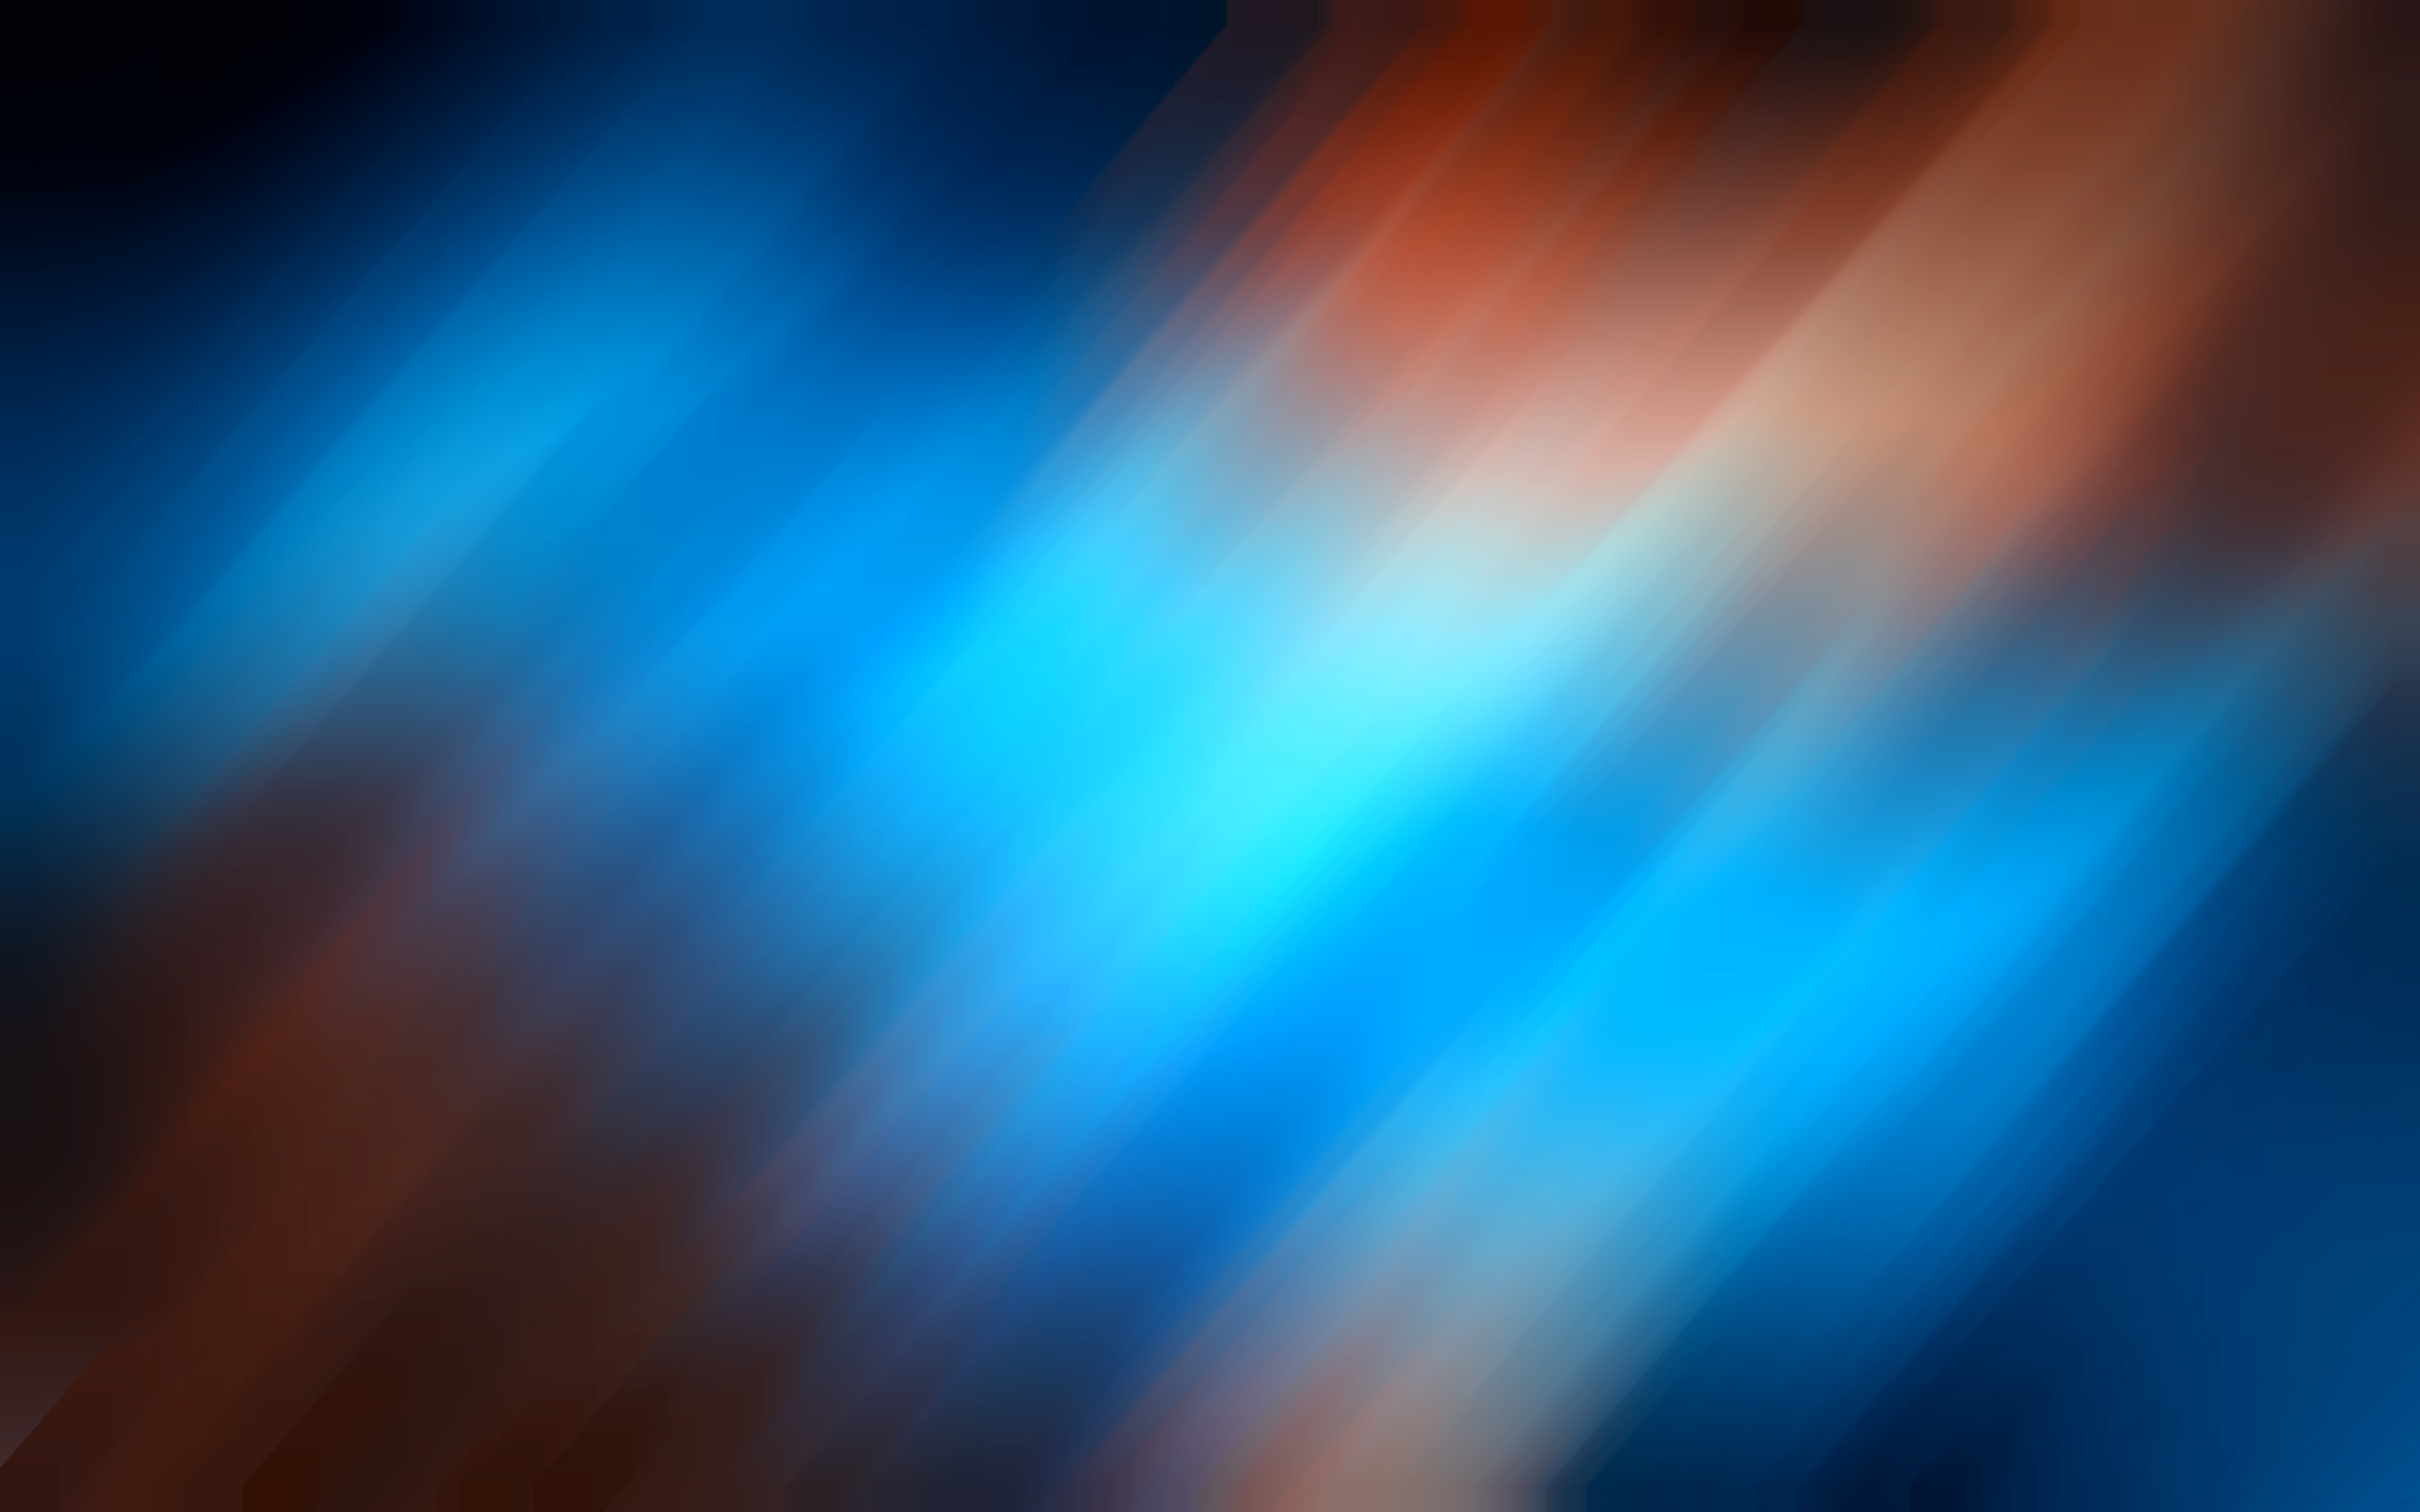 3840x2400 abstract colors hd 4k hd 4k wallpapers, images